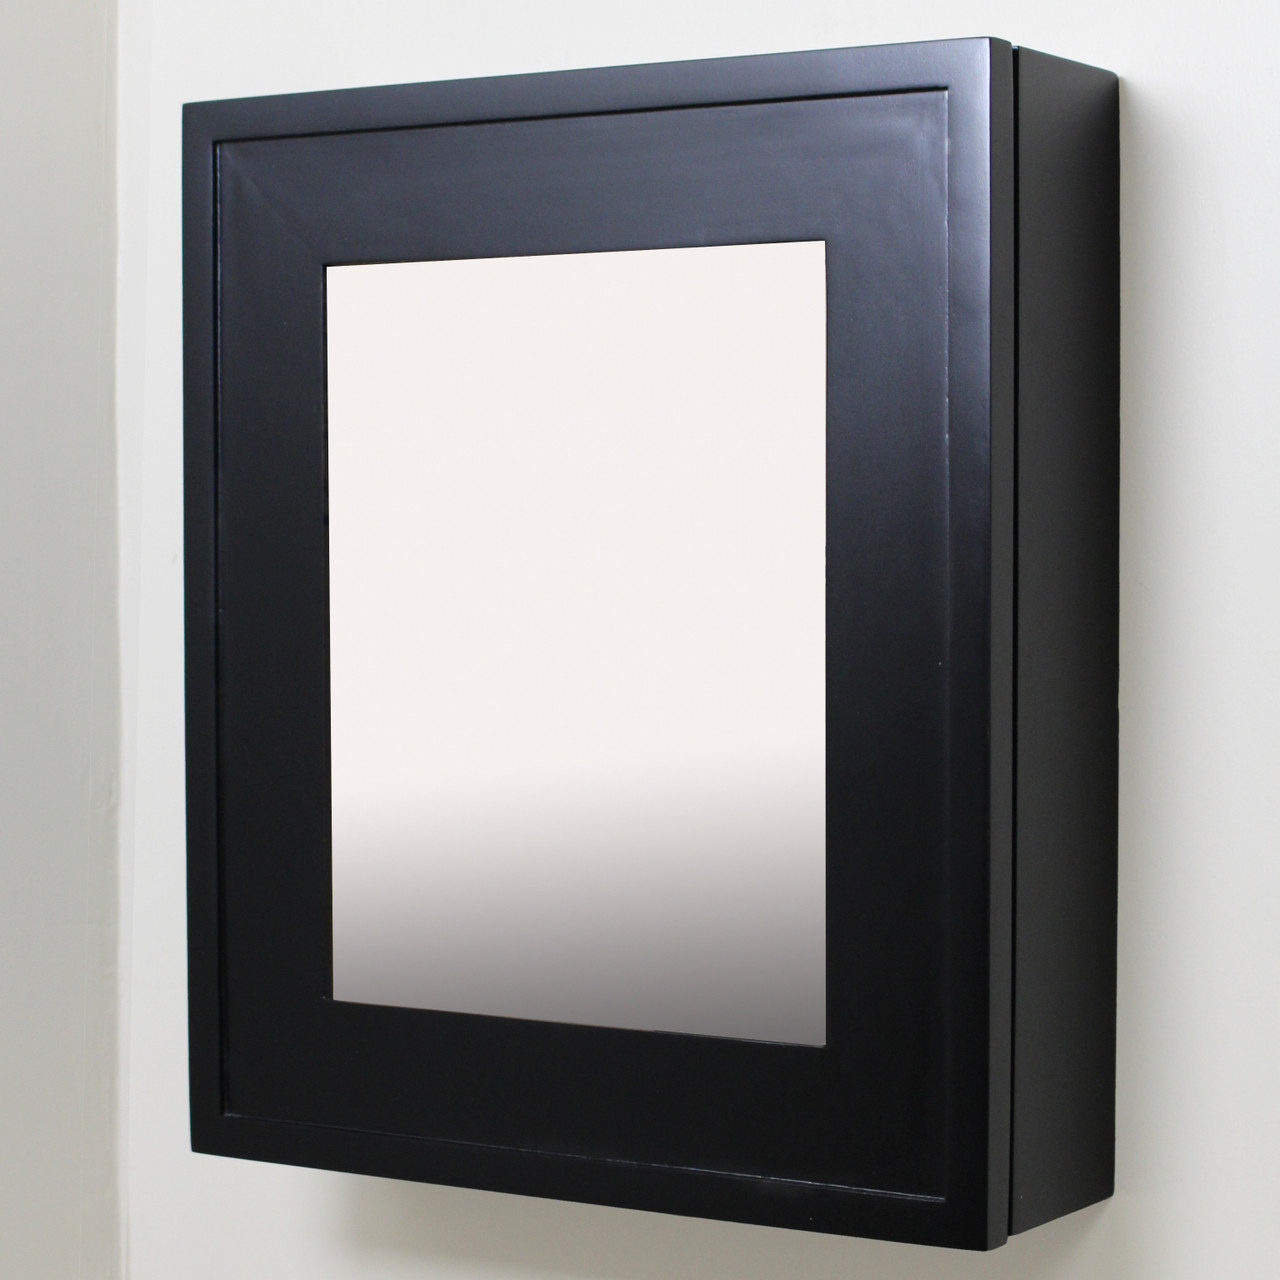 Picture of: Black Wall Mount Mirrored Medicine Cabinet